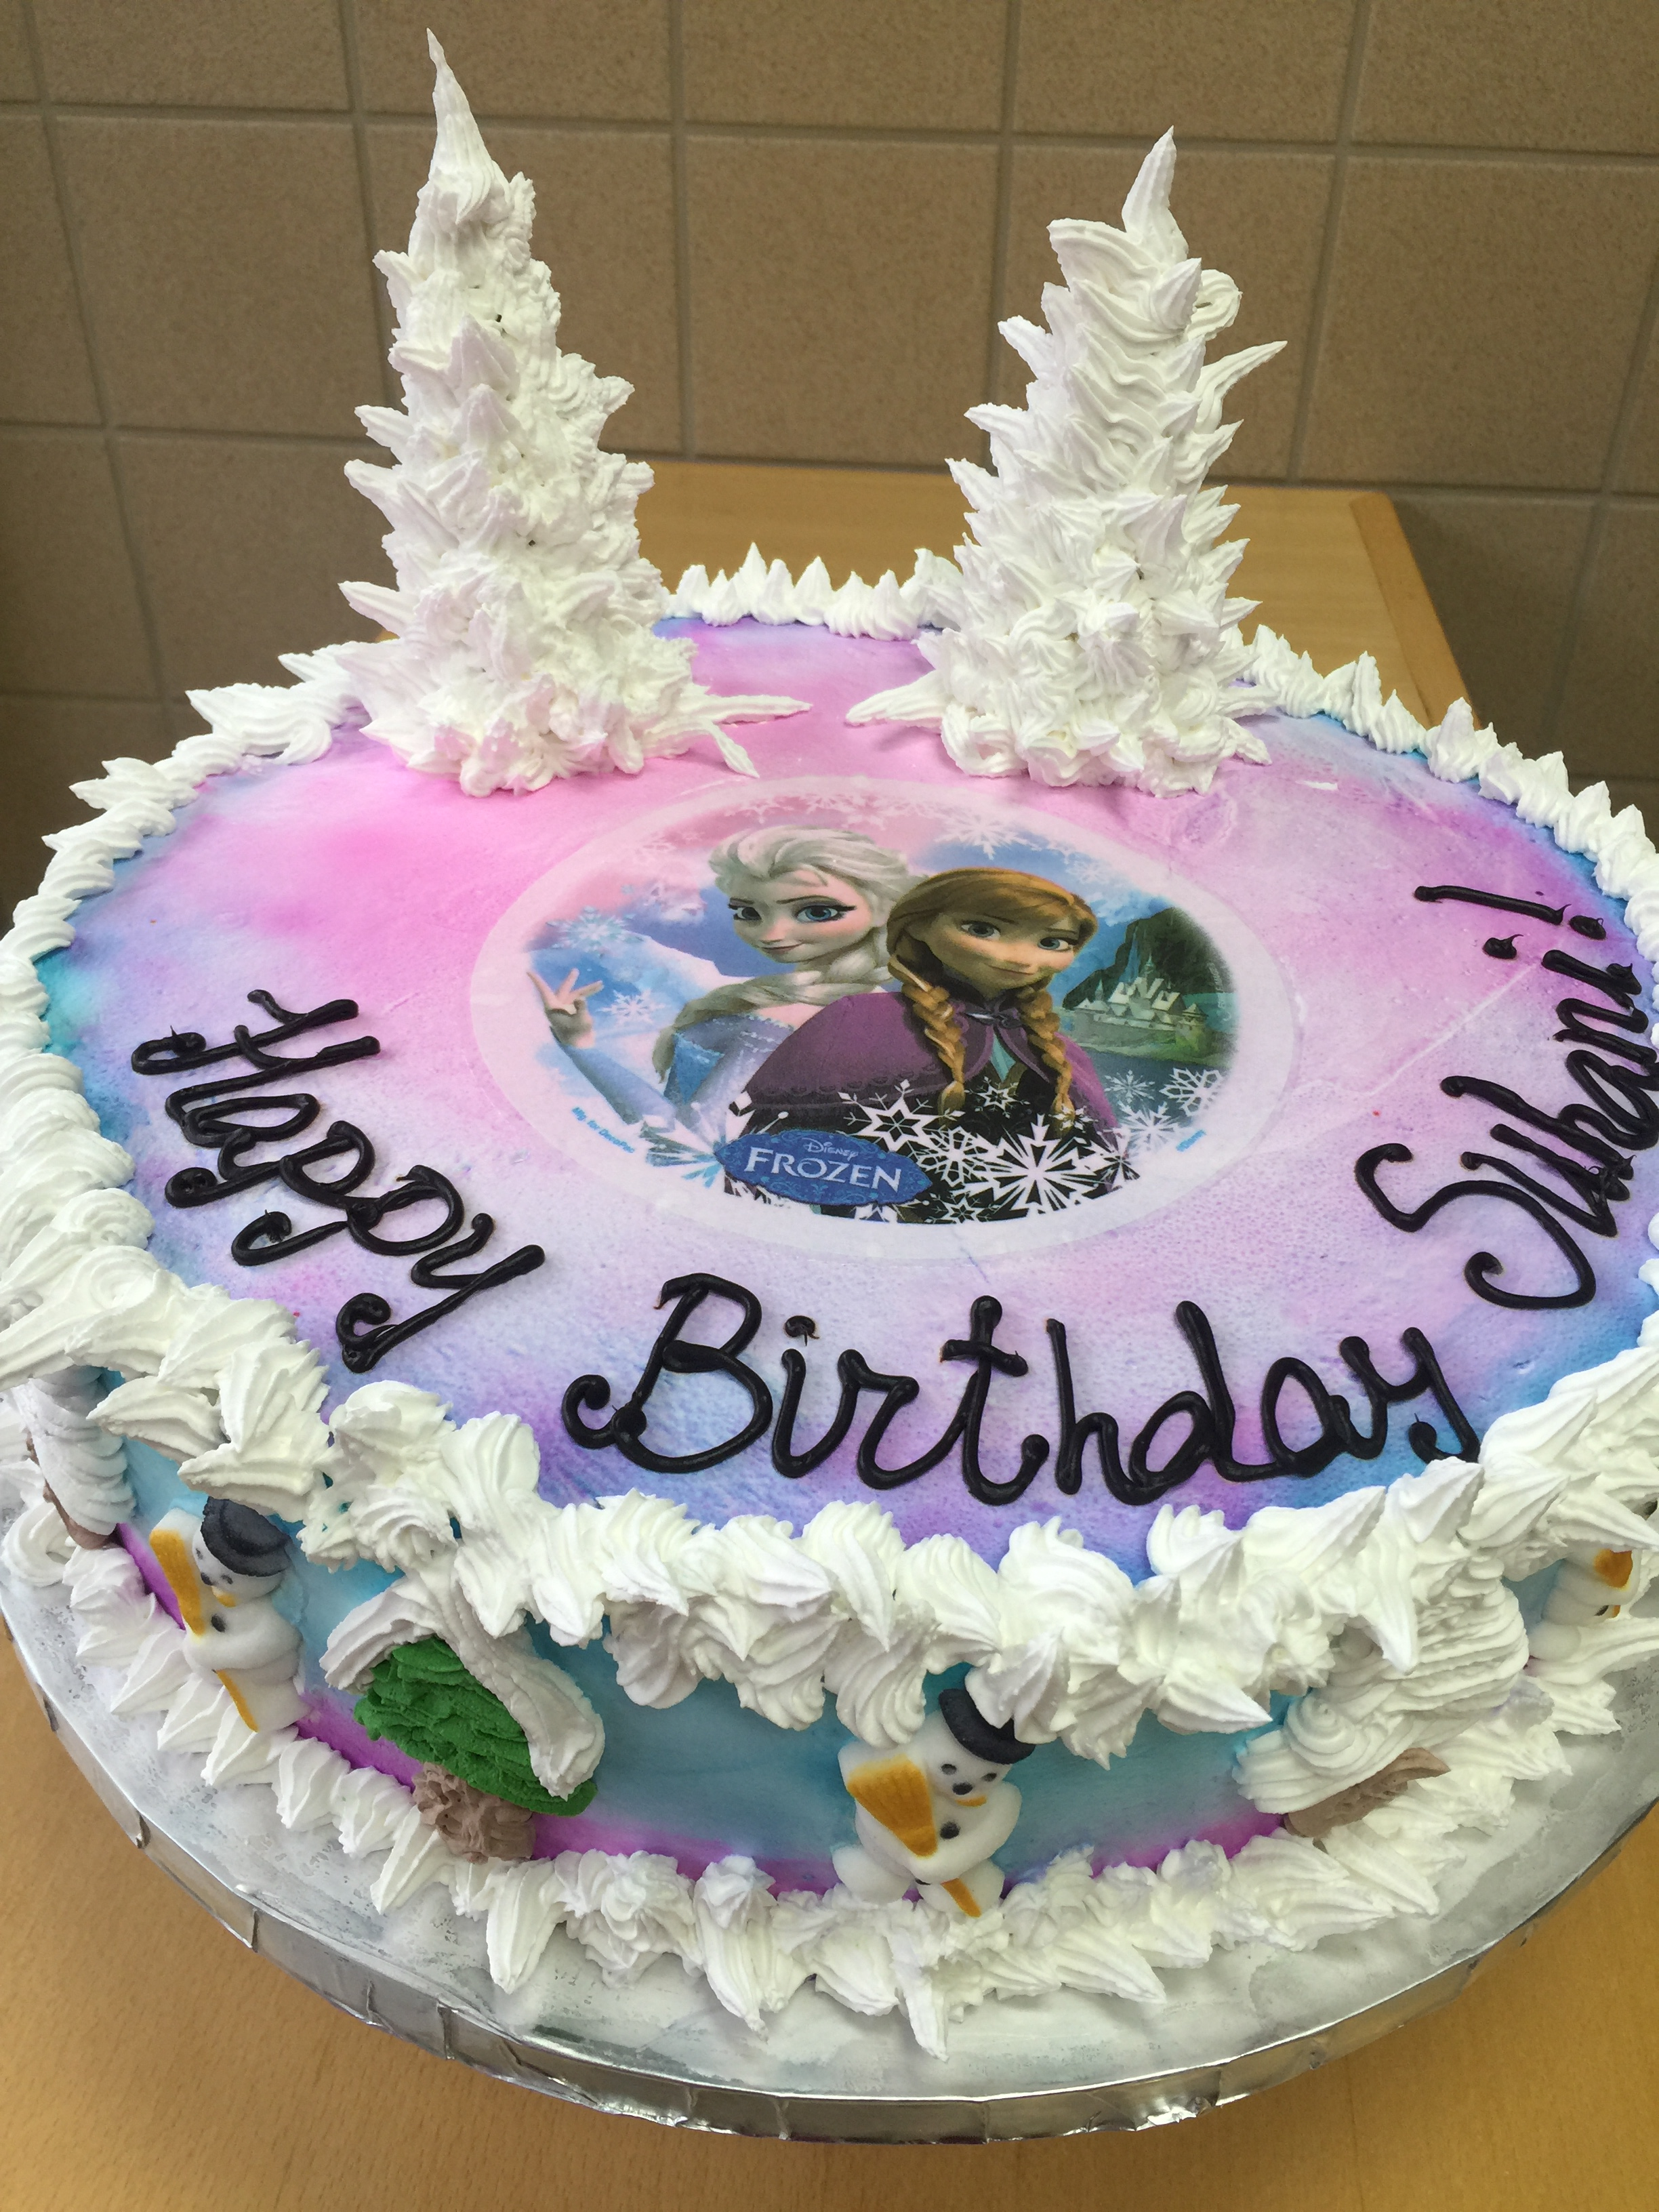 Disneys Frozenthemed Cake Wild Berries Bakery and Cafe